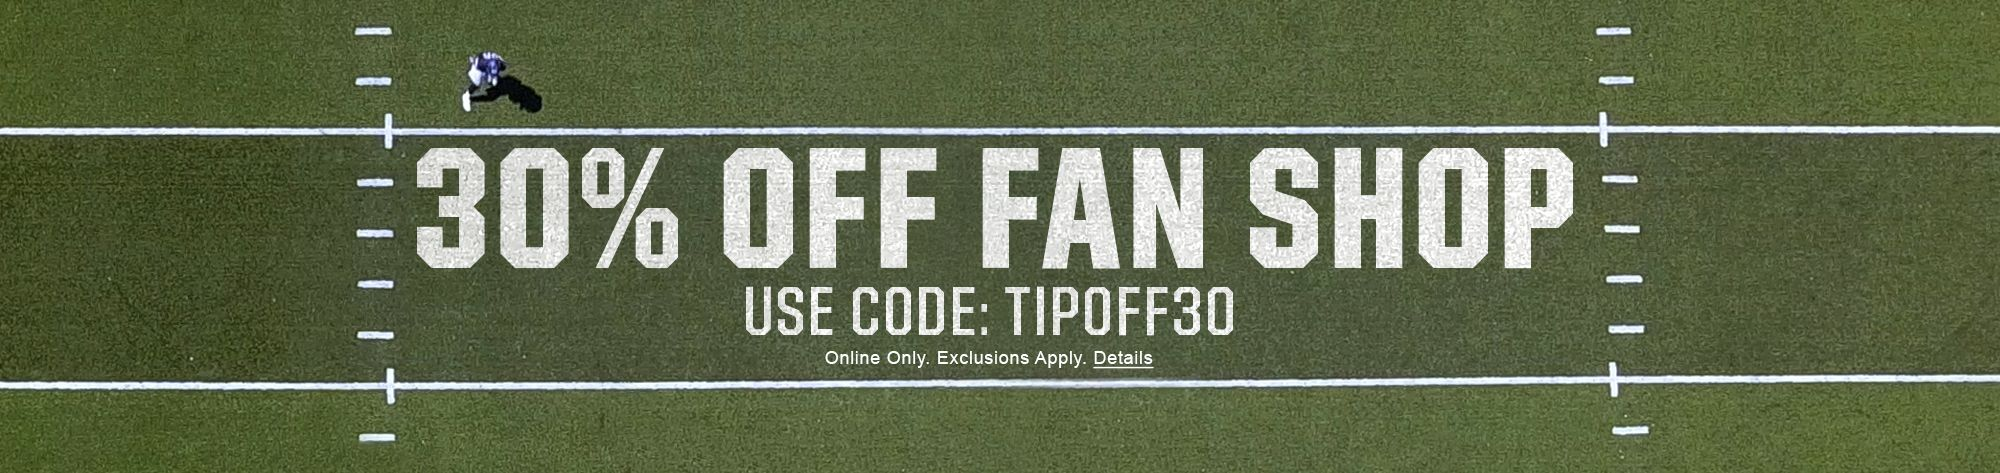 30% OFF FAN SHOP USE CODE: TIPOFF30 Online Only. Exclusions Apply. Details